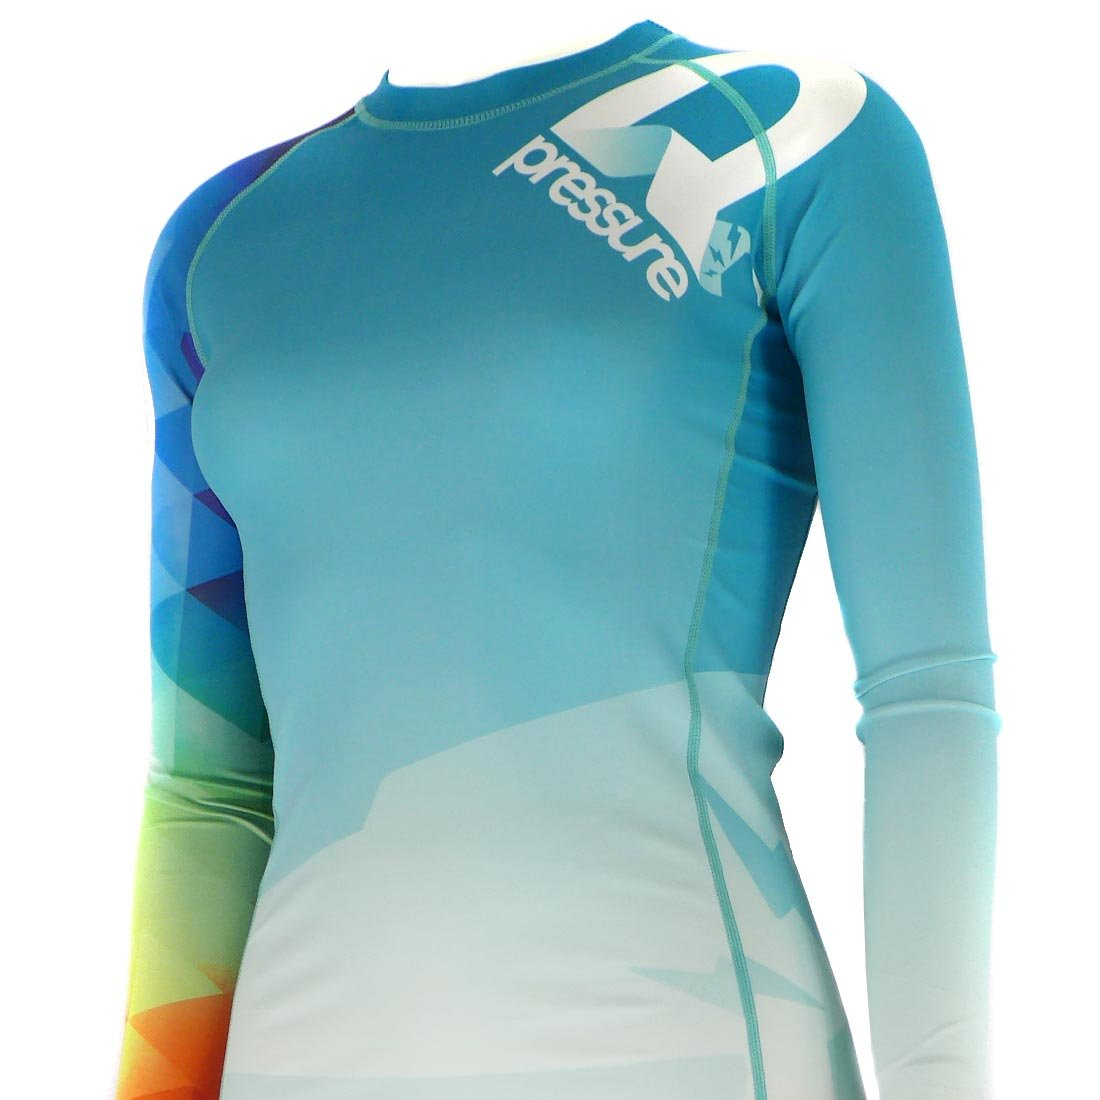 Pressure Grappling Women's Premium BJJ Long Sleeve Rash Guard with Lockdown Band (Trianglow v2.0, 2X Large)